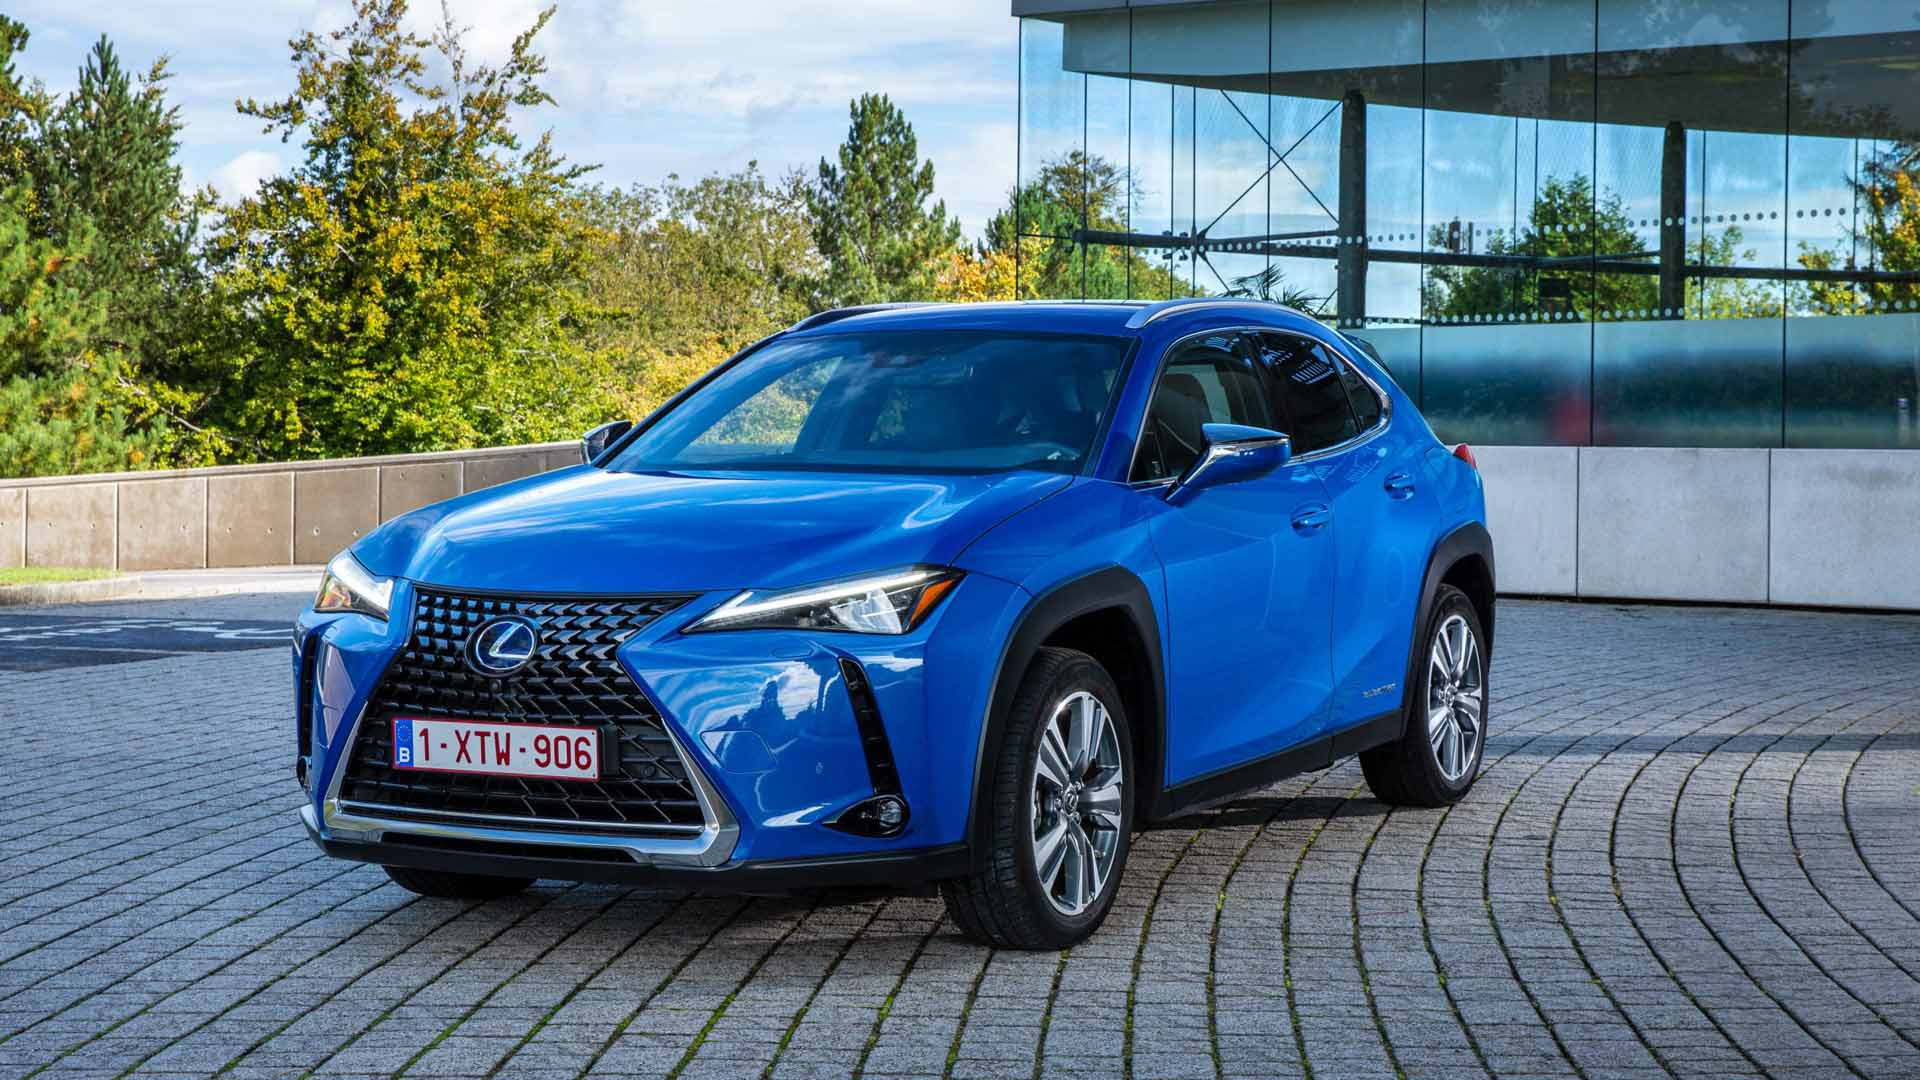 New Used Lexus Ux 250h Cars For Sale Autotrader